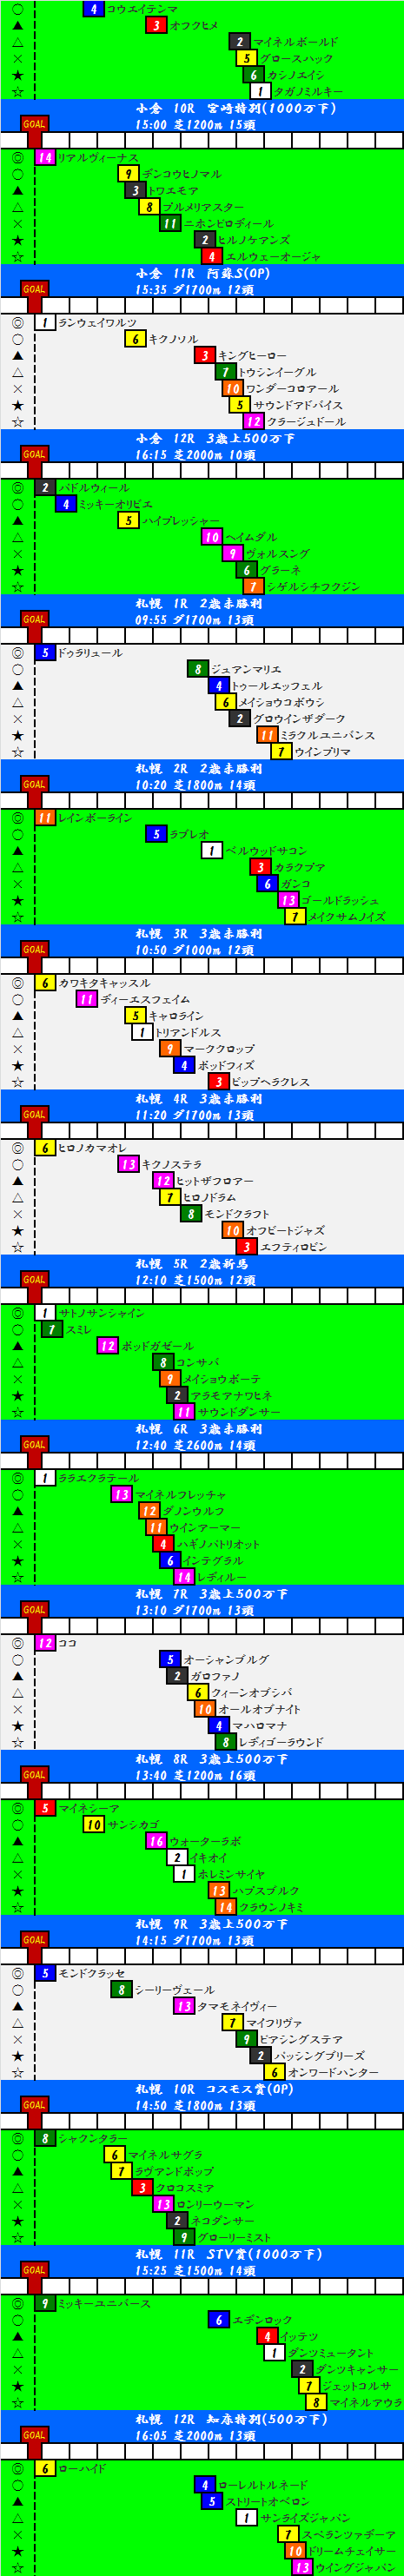 2015081502.png